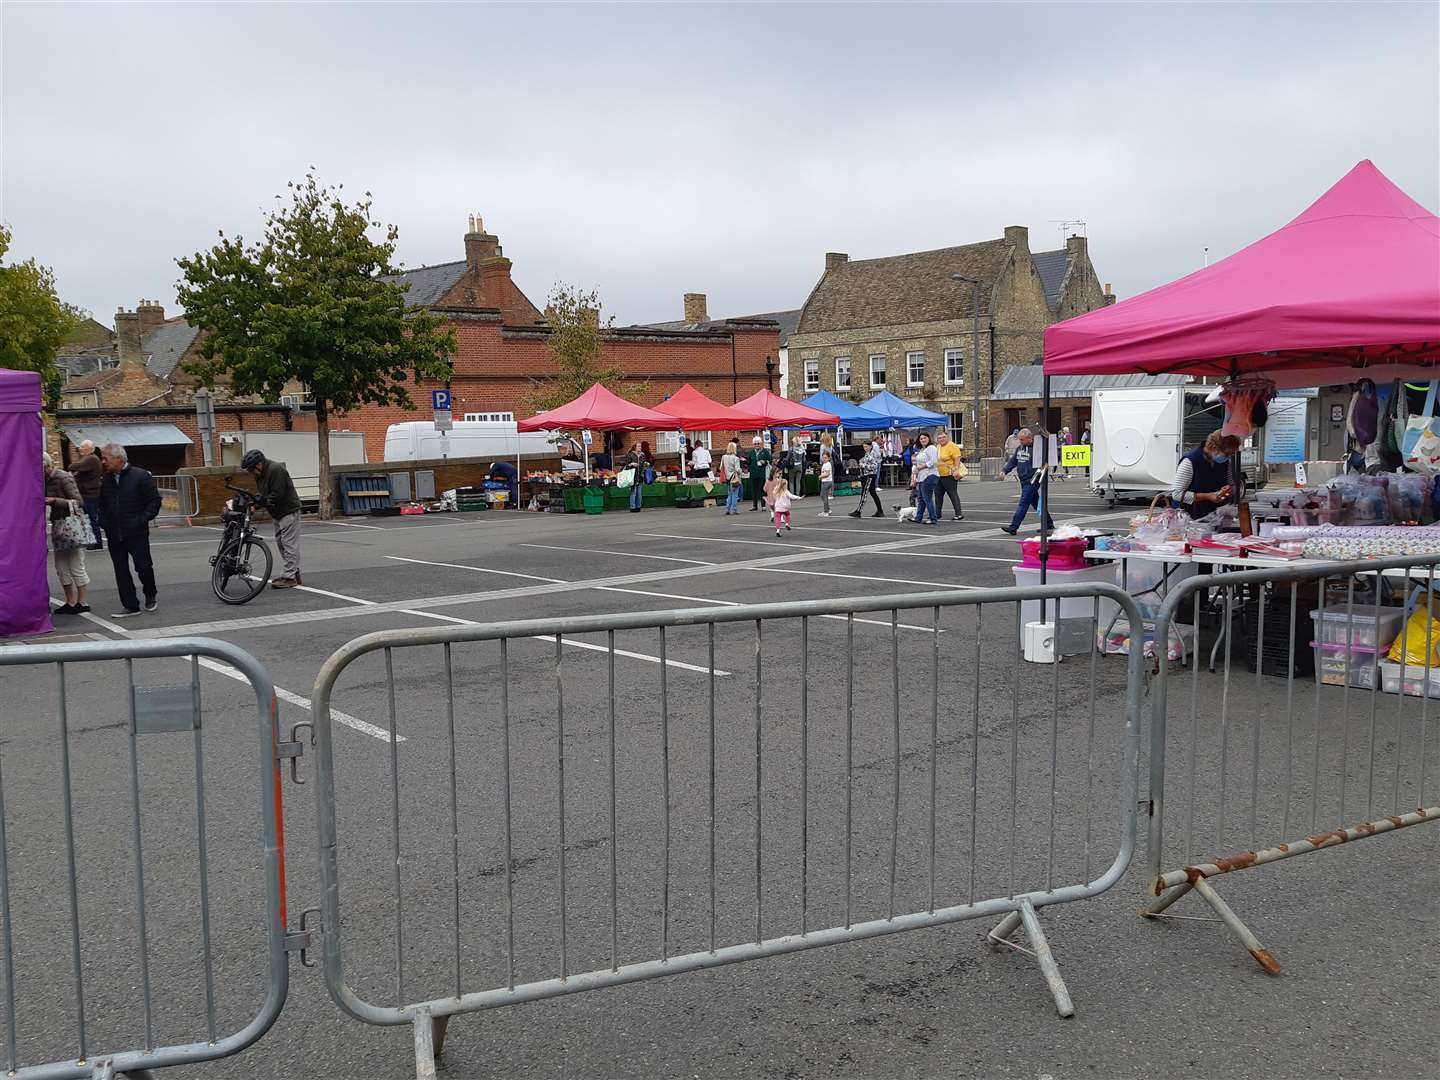 The market in Downham earlier today (Friday, August 28) (41433607)